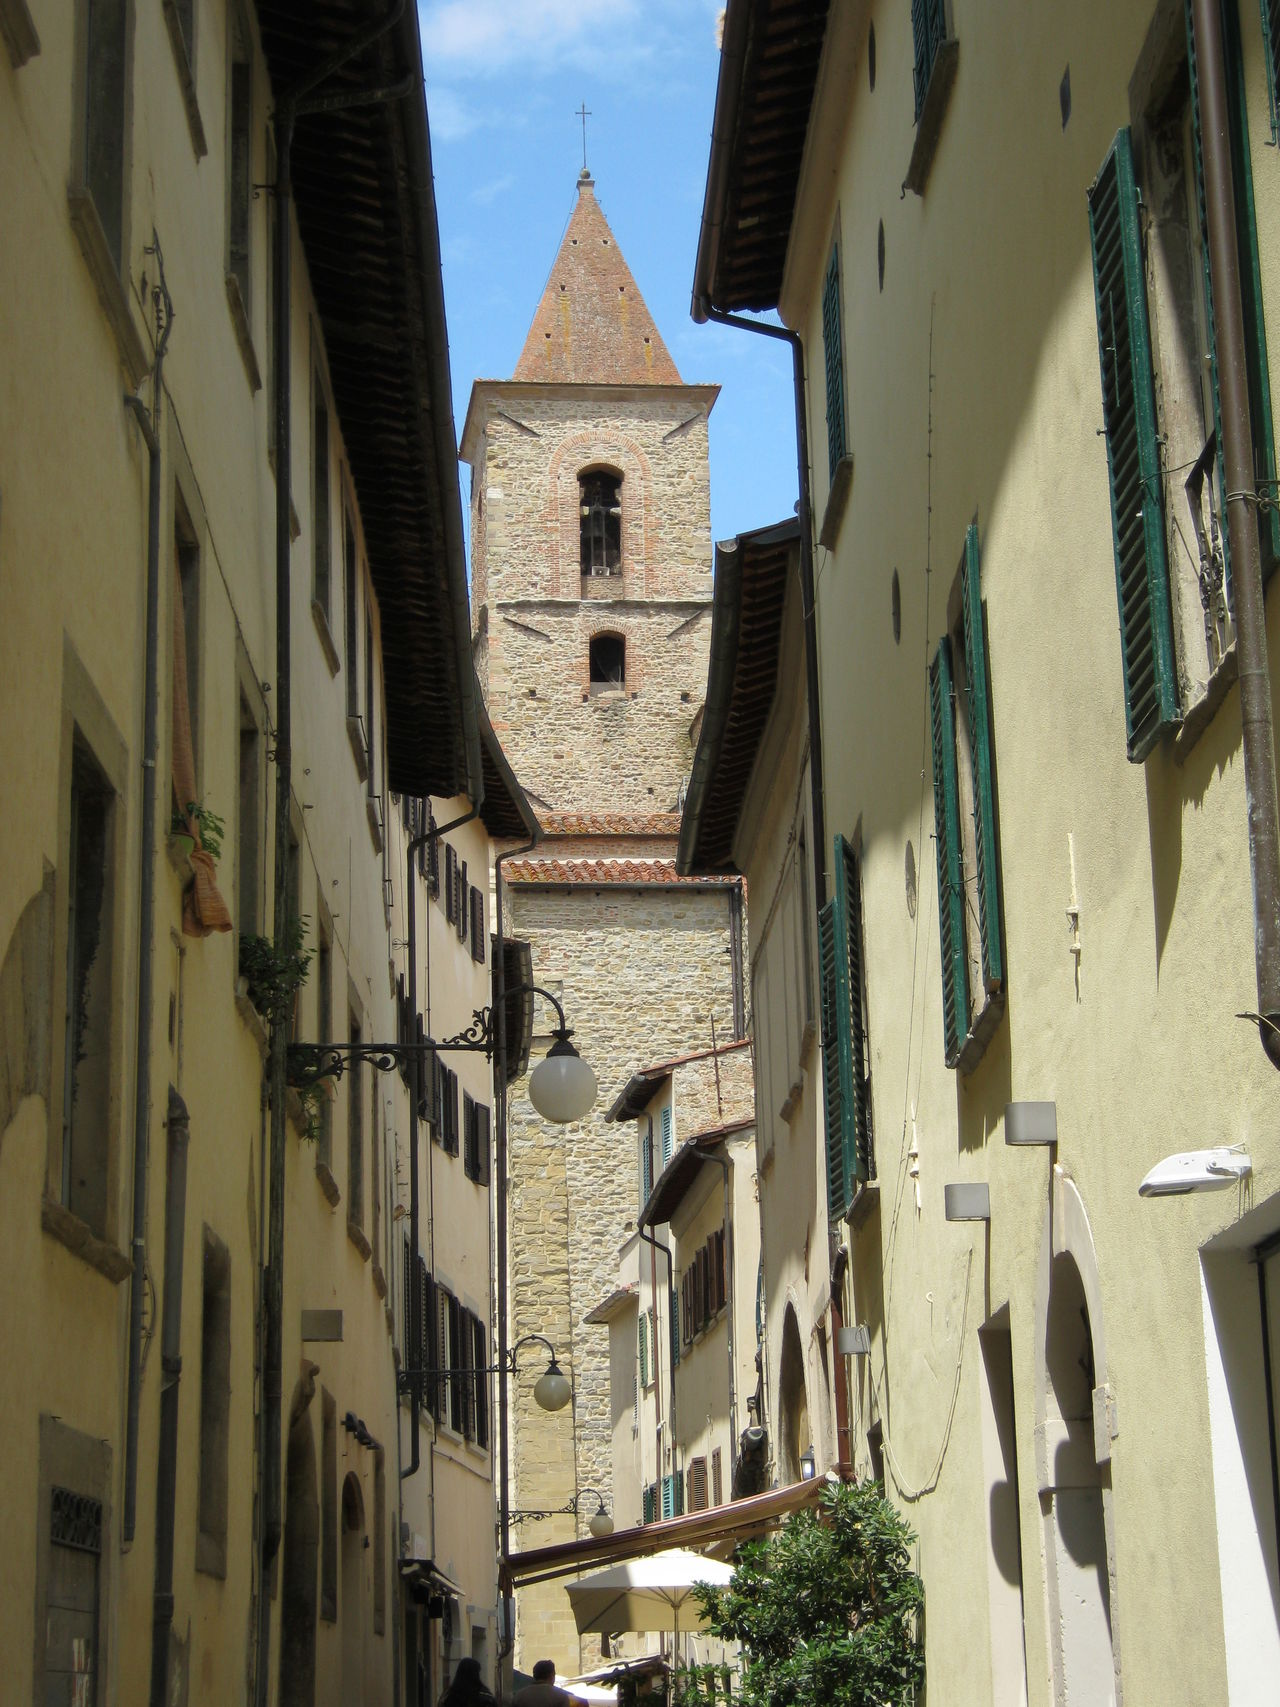 Arezzo, giugno 2011 Architecture Bell Tower Building Exterior Built Structure Day No People Outdoors Window